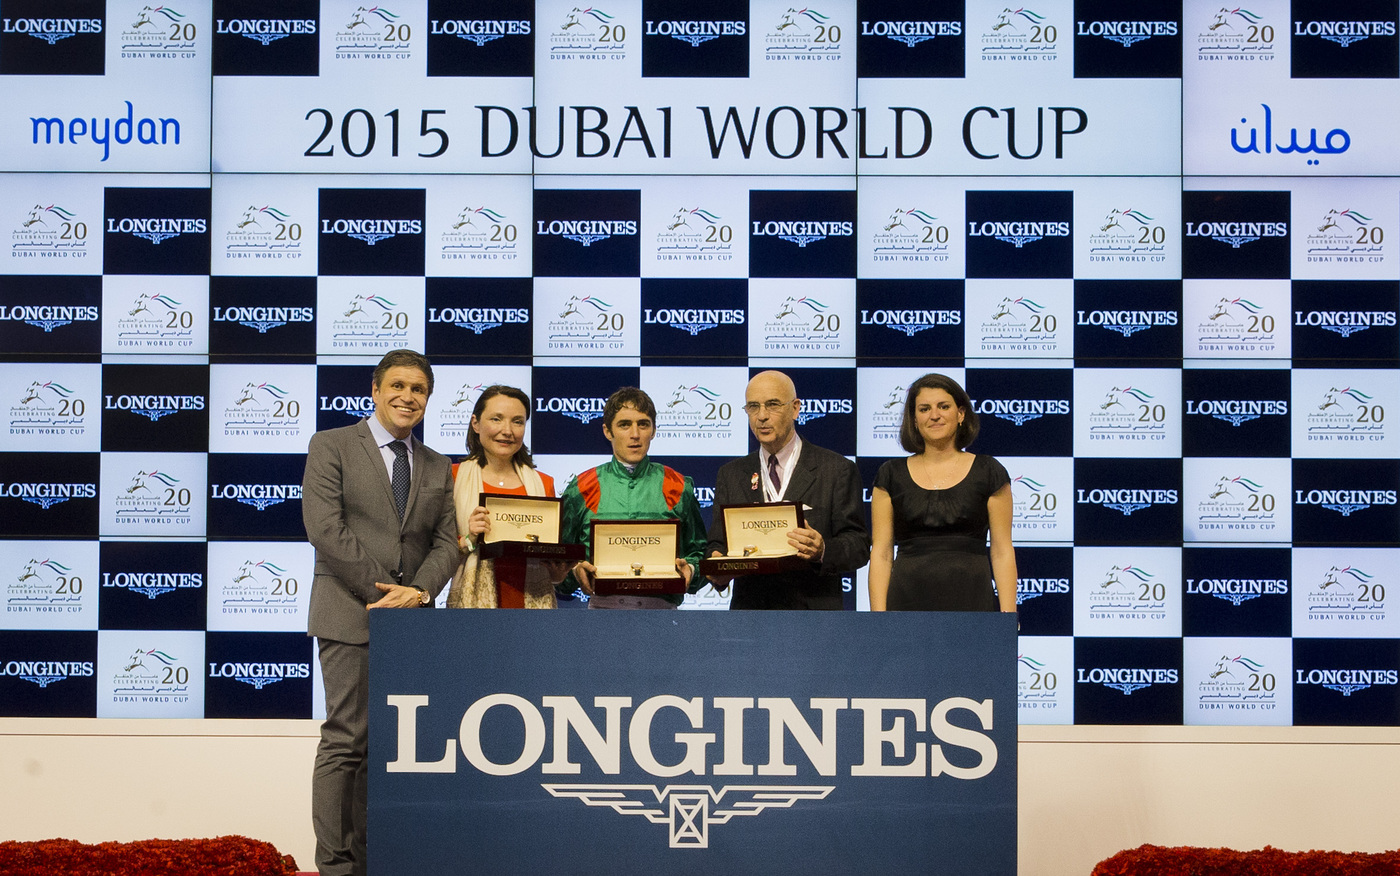 Longines Flat Racing Event: Longines elegantly celebrates the 20th edition of the Dubai World Cup 7